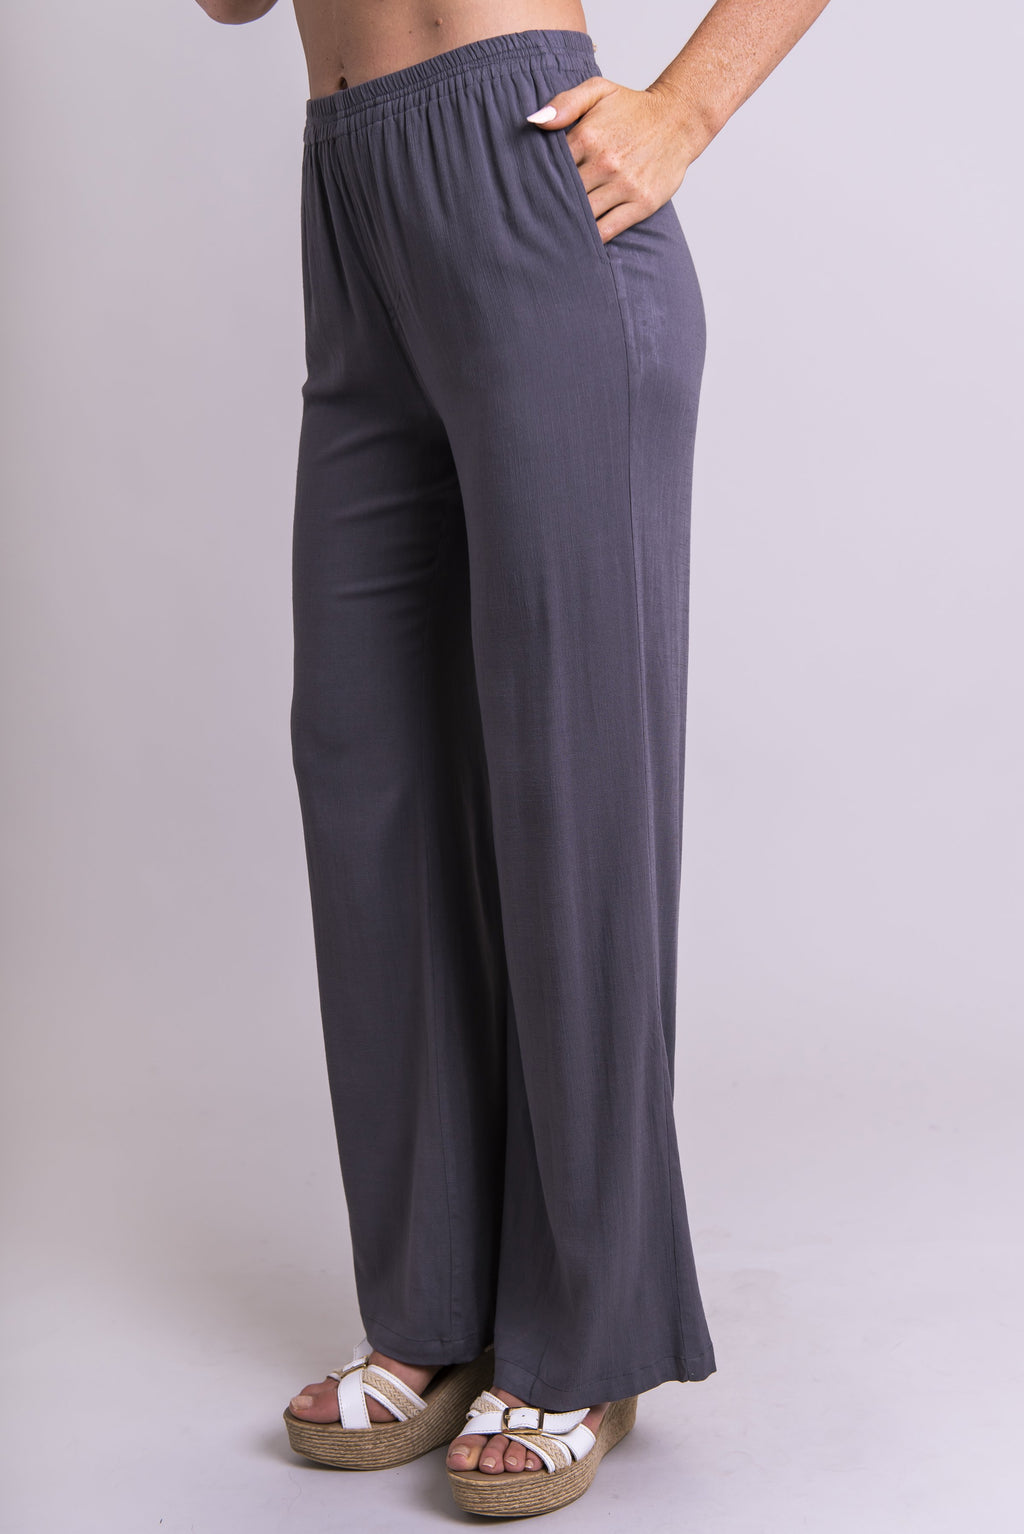 Parker Pant, Ash Grey, Linen Bamboo - Blue Sky Clothing Co